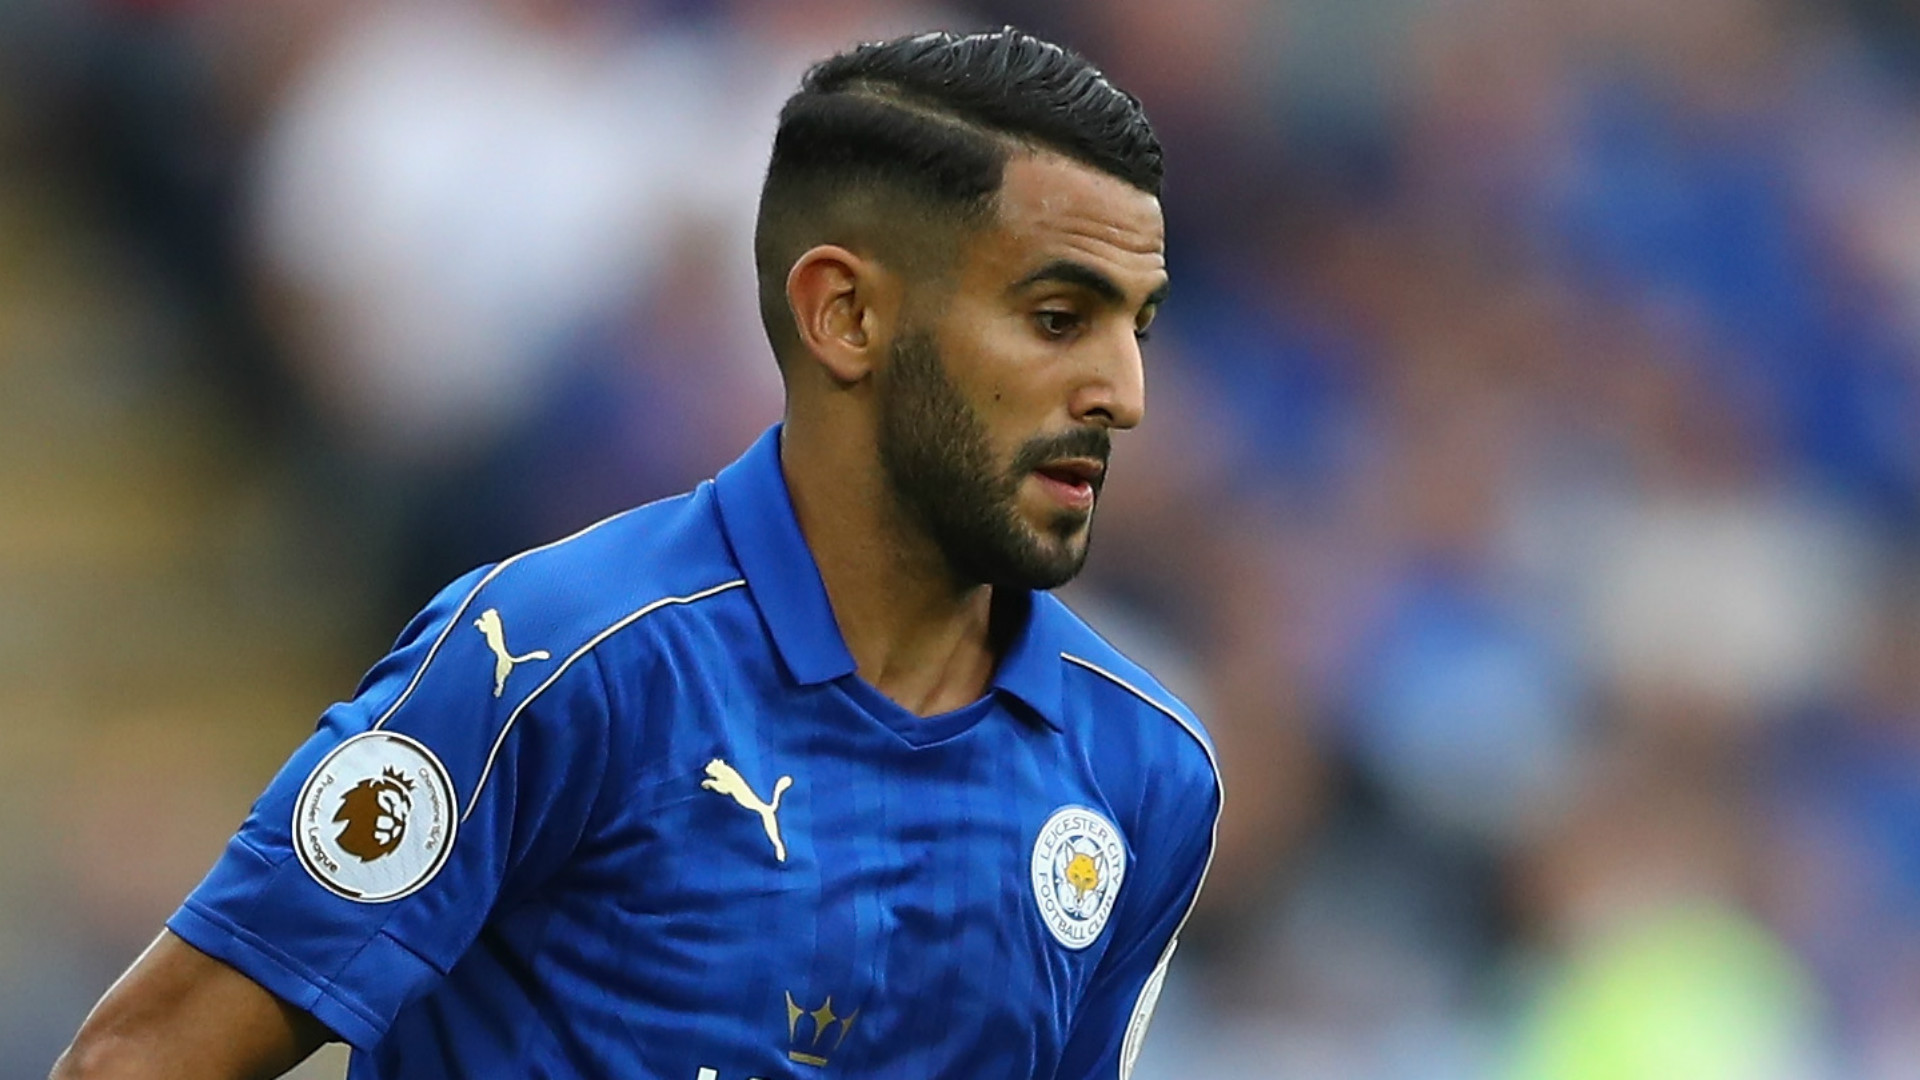 Arsenal should sign Riyad Mahrez instead of Ross Barkley - Alan Smith